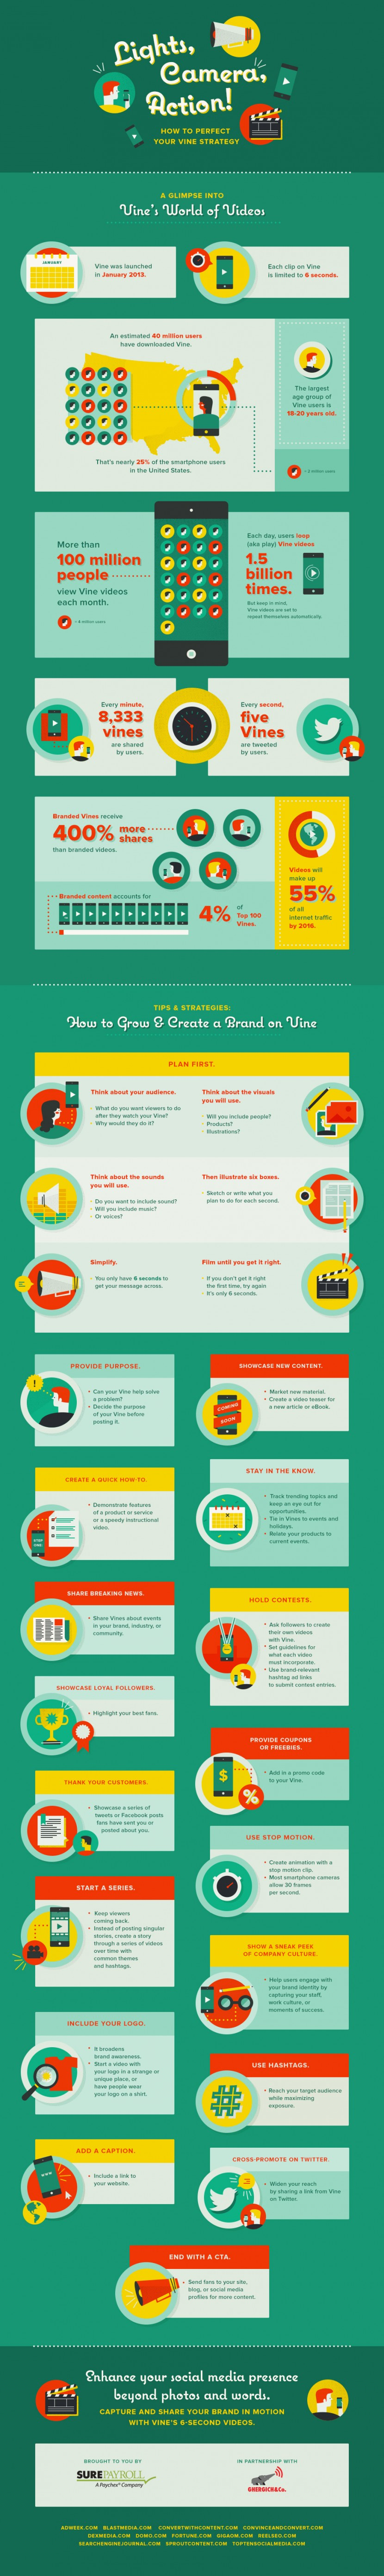 Infographie-226-Vine-communication-strategy-830x5563